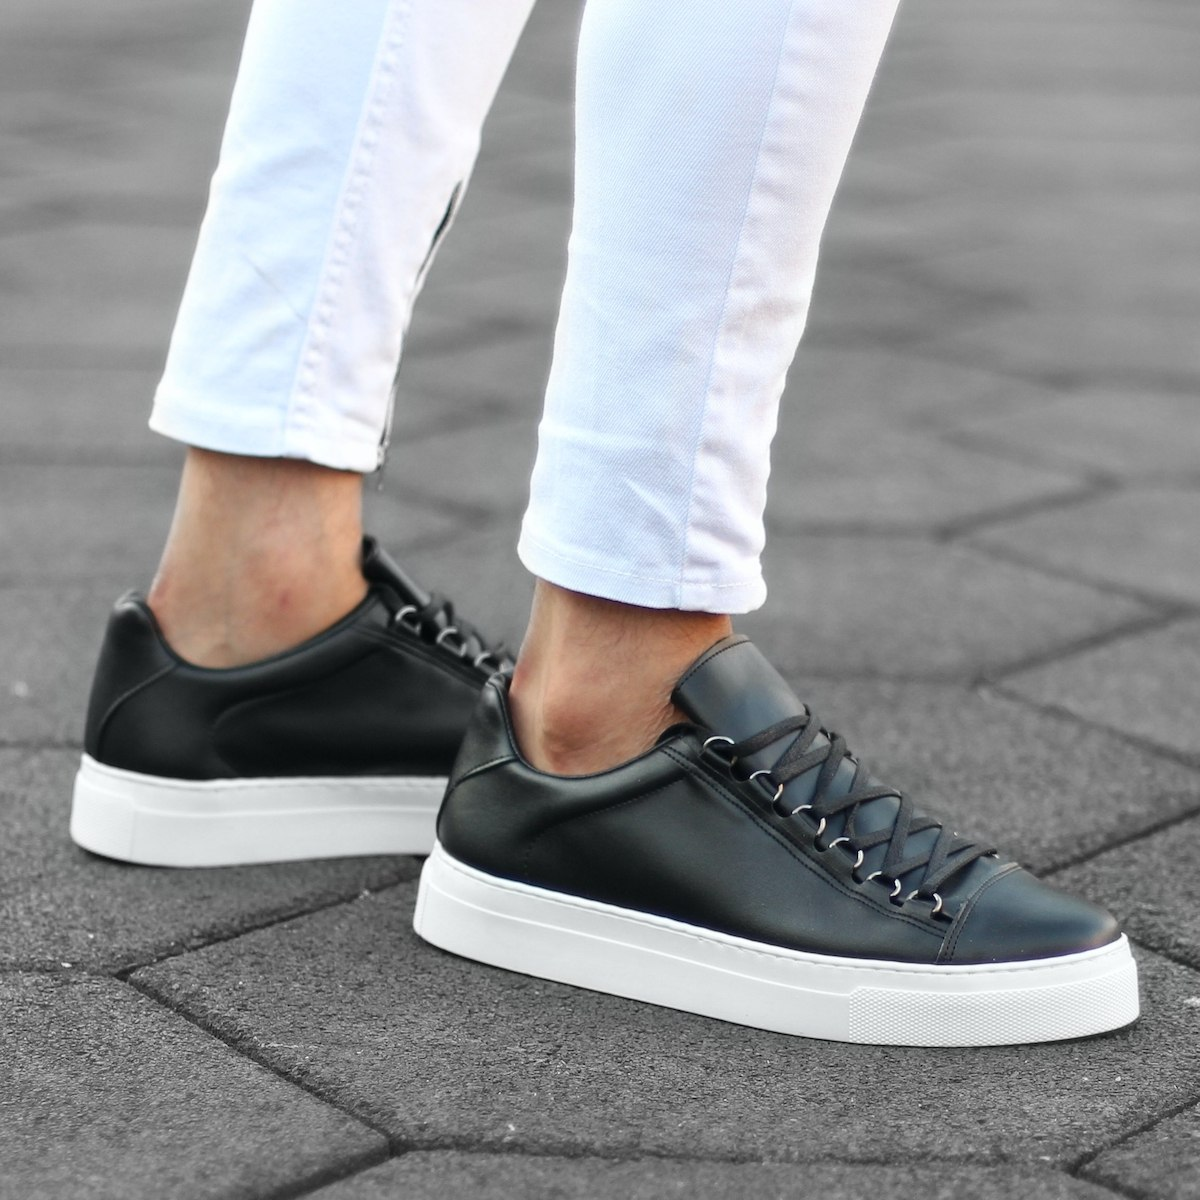 Mox High Sole Sneakers in Black&White